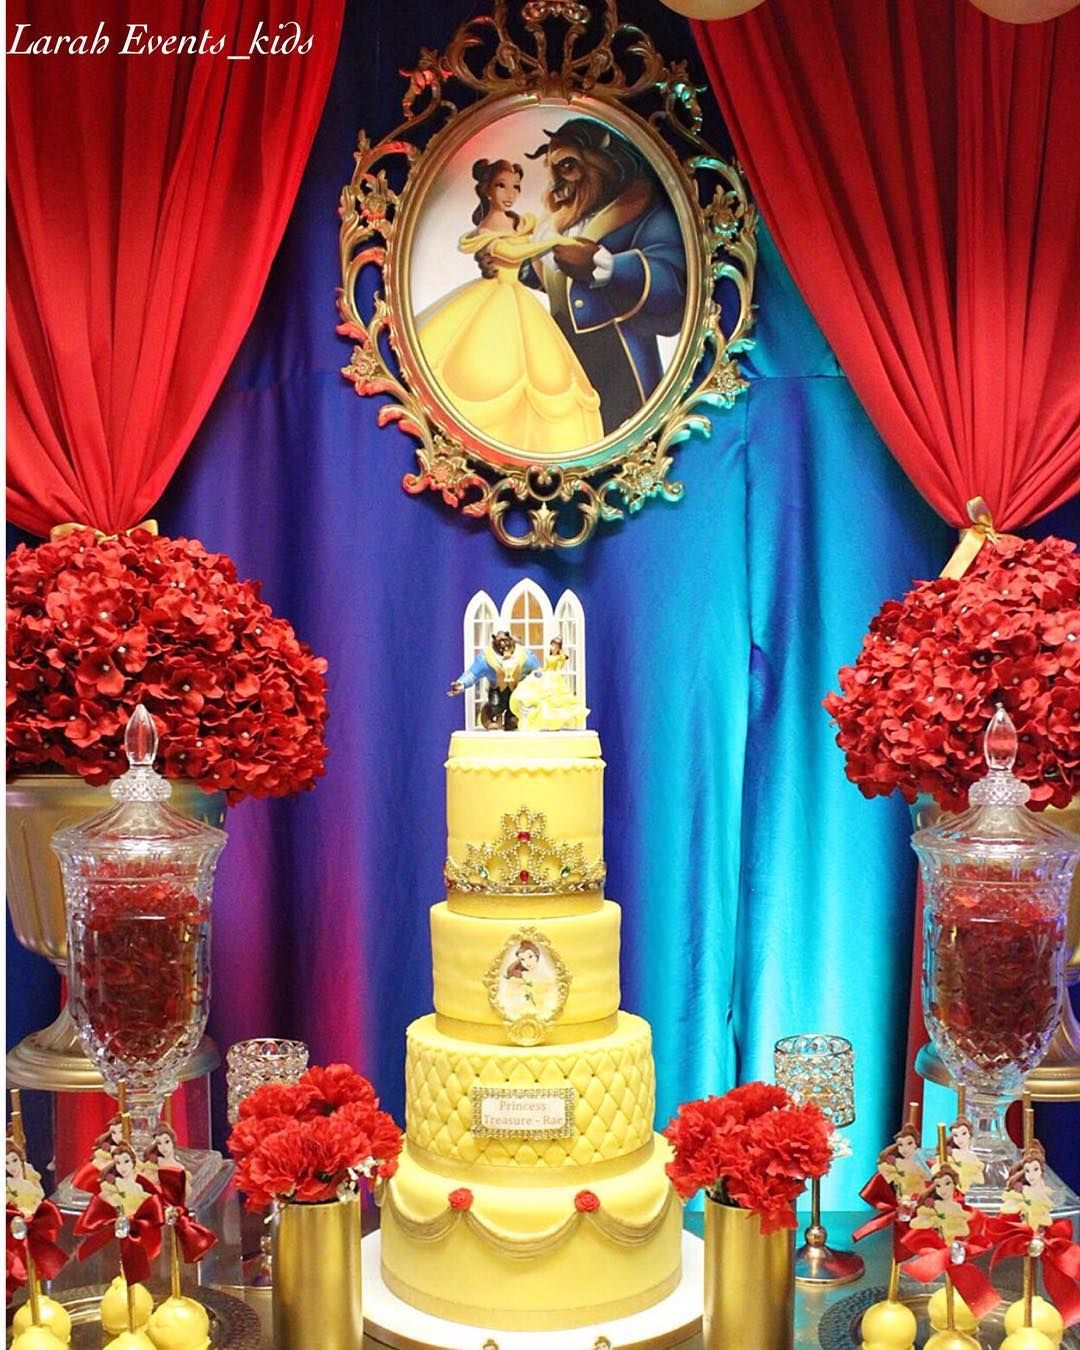 Beauty And The Beast Themed Birthday Party Setup We Did For